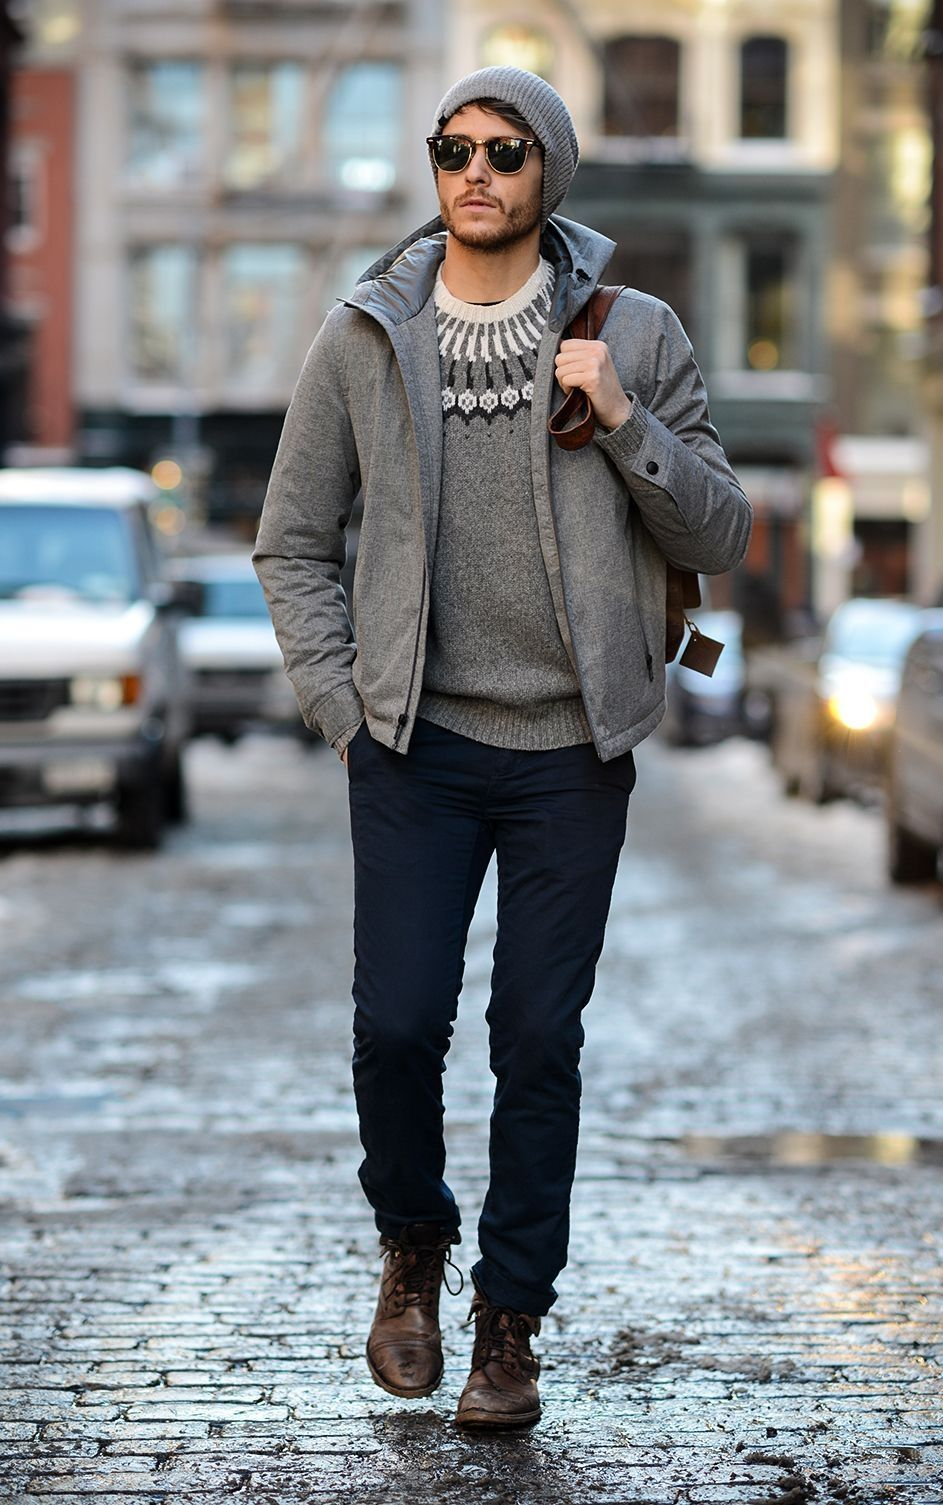 99outfit Com Fashion Style Men Women Winter Outfits Men Mens Joggers Outfit Mens Fashion Sweaters